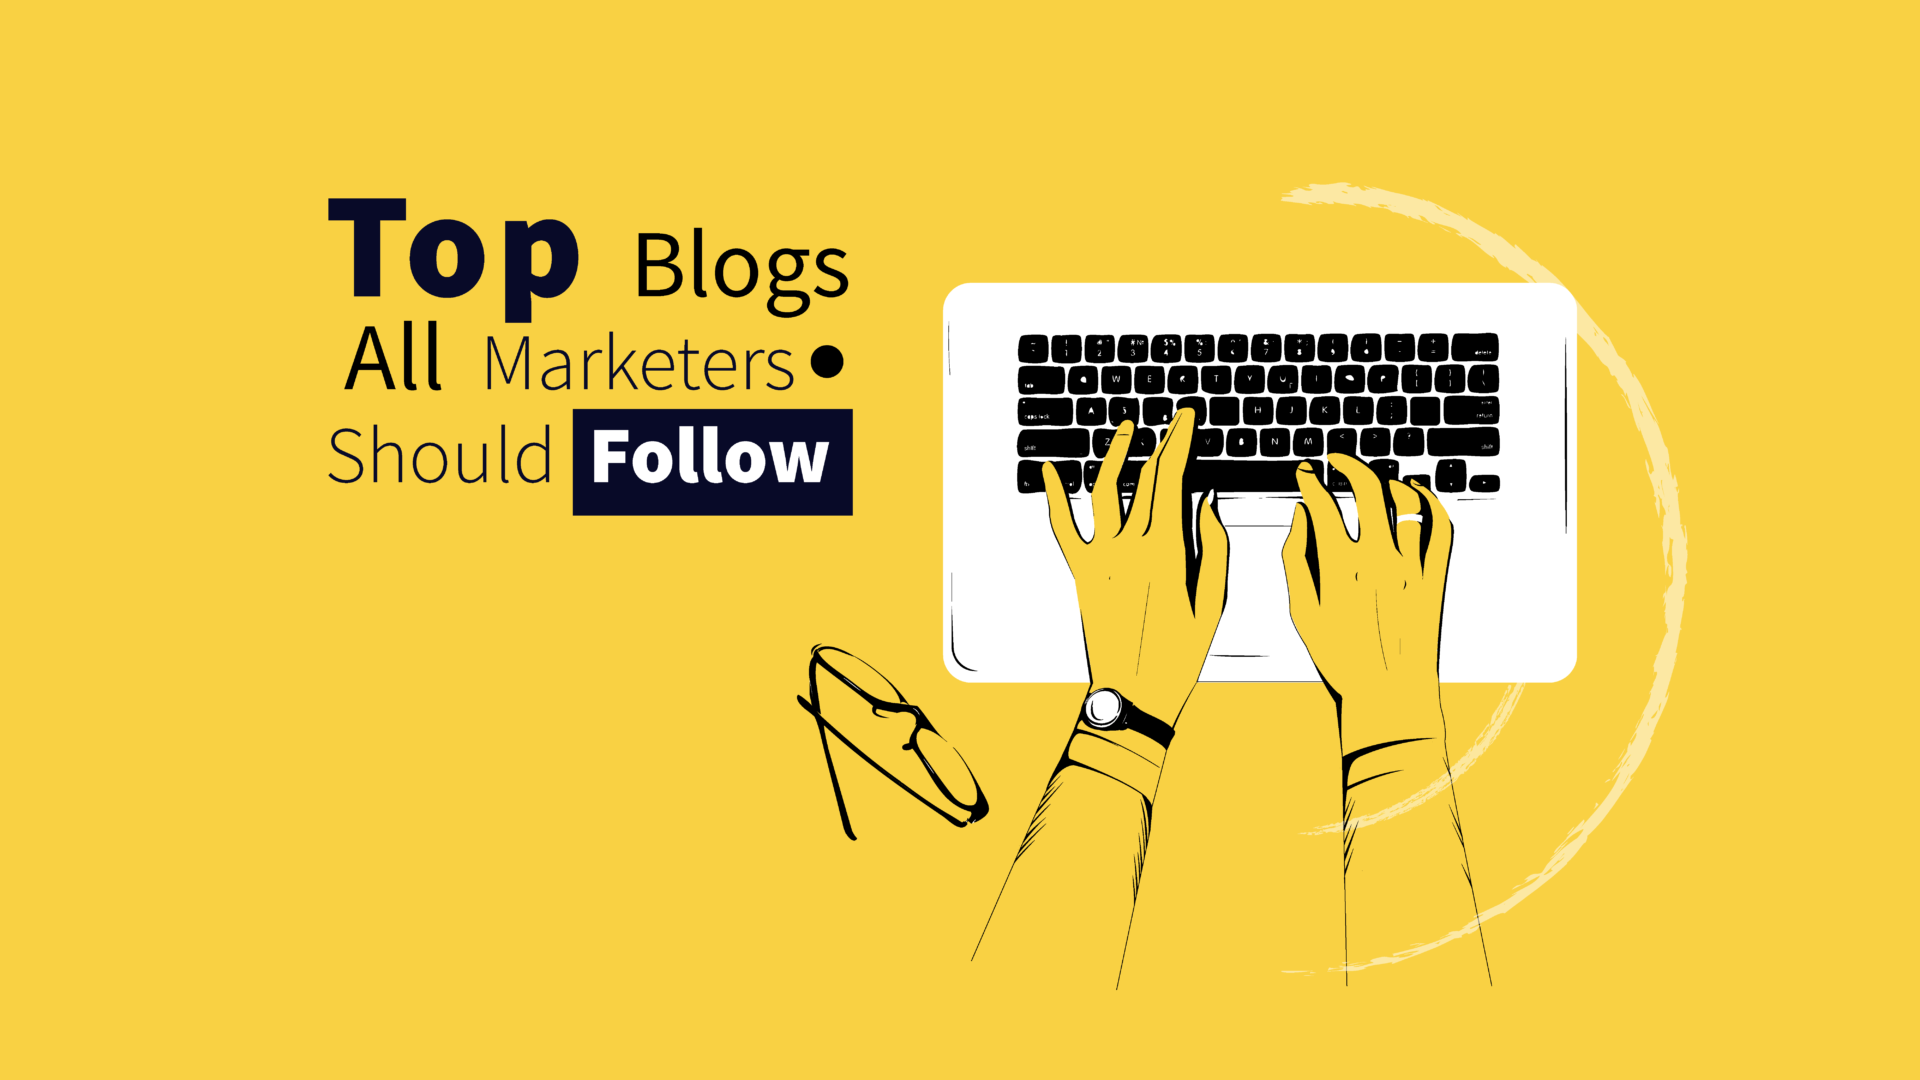 Top Blogs For Digital Marketers to Follow